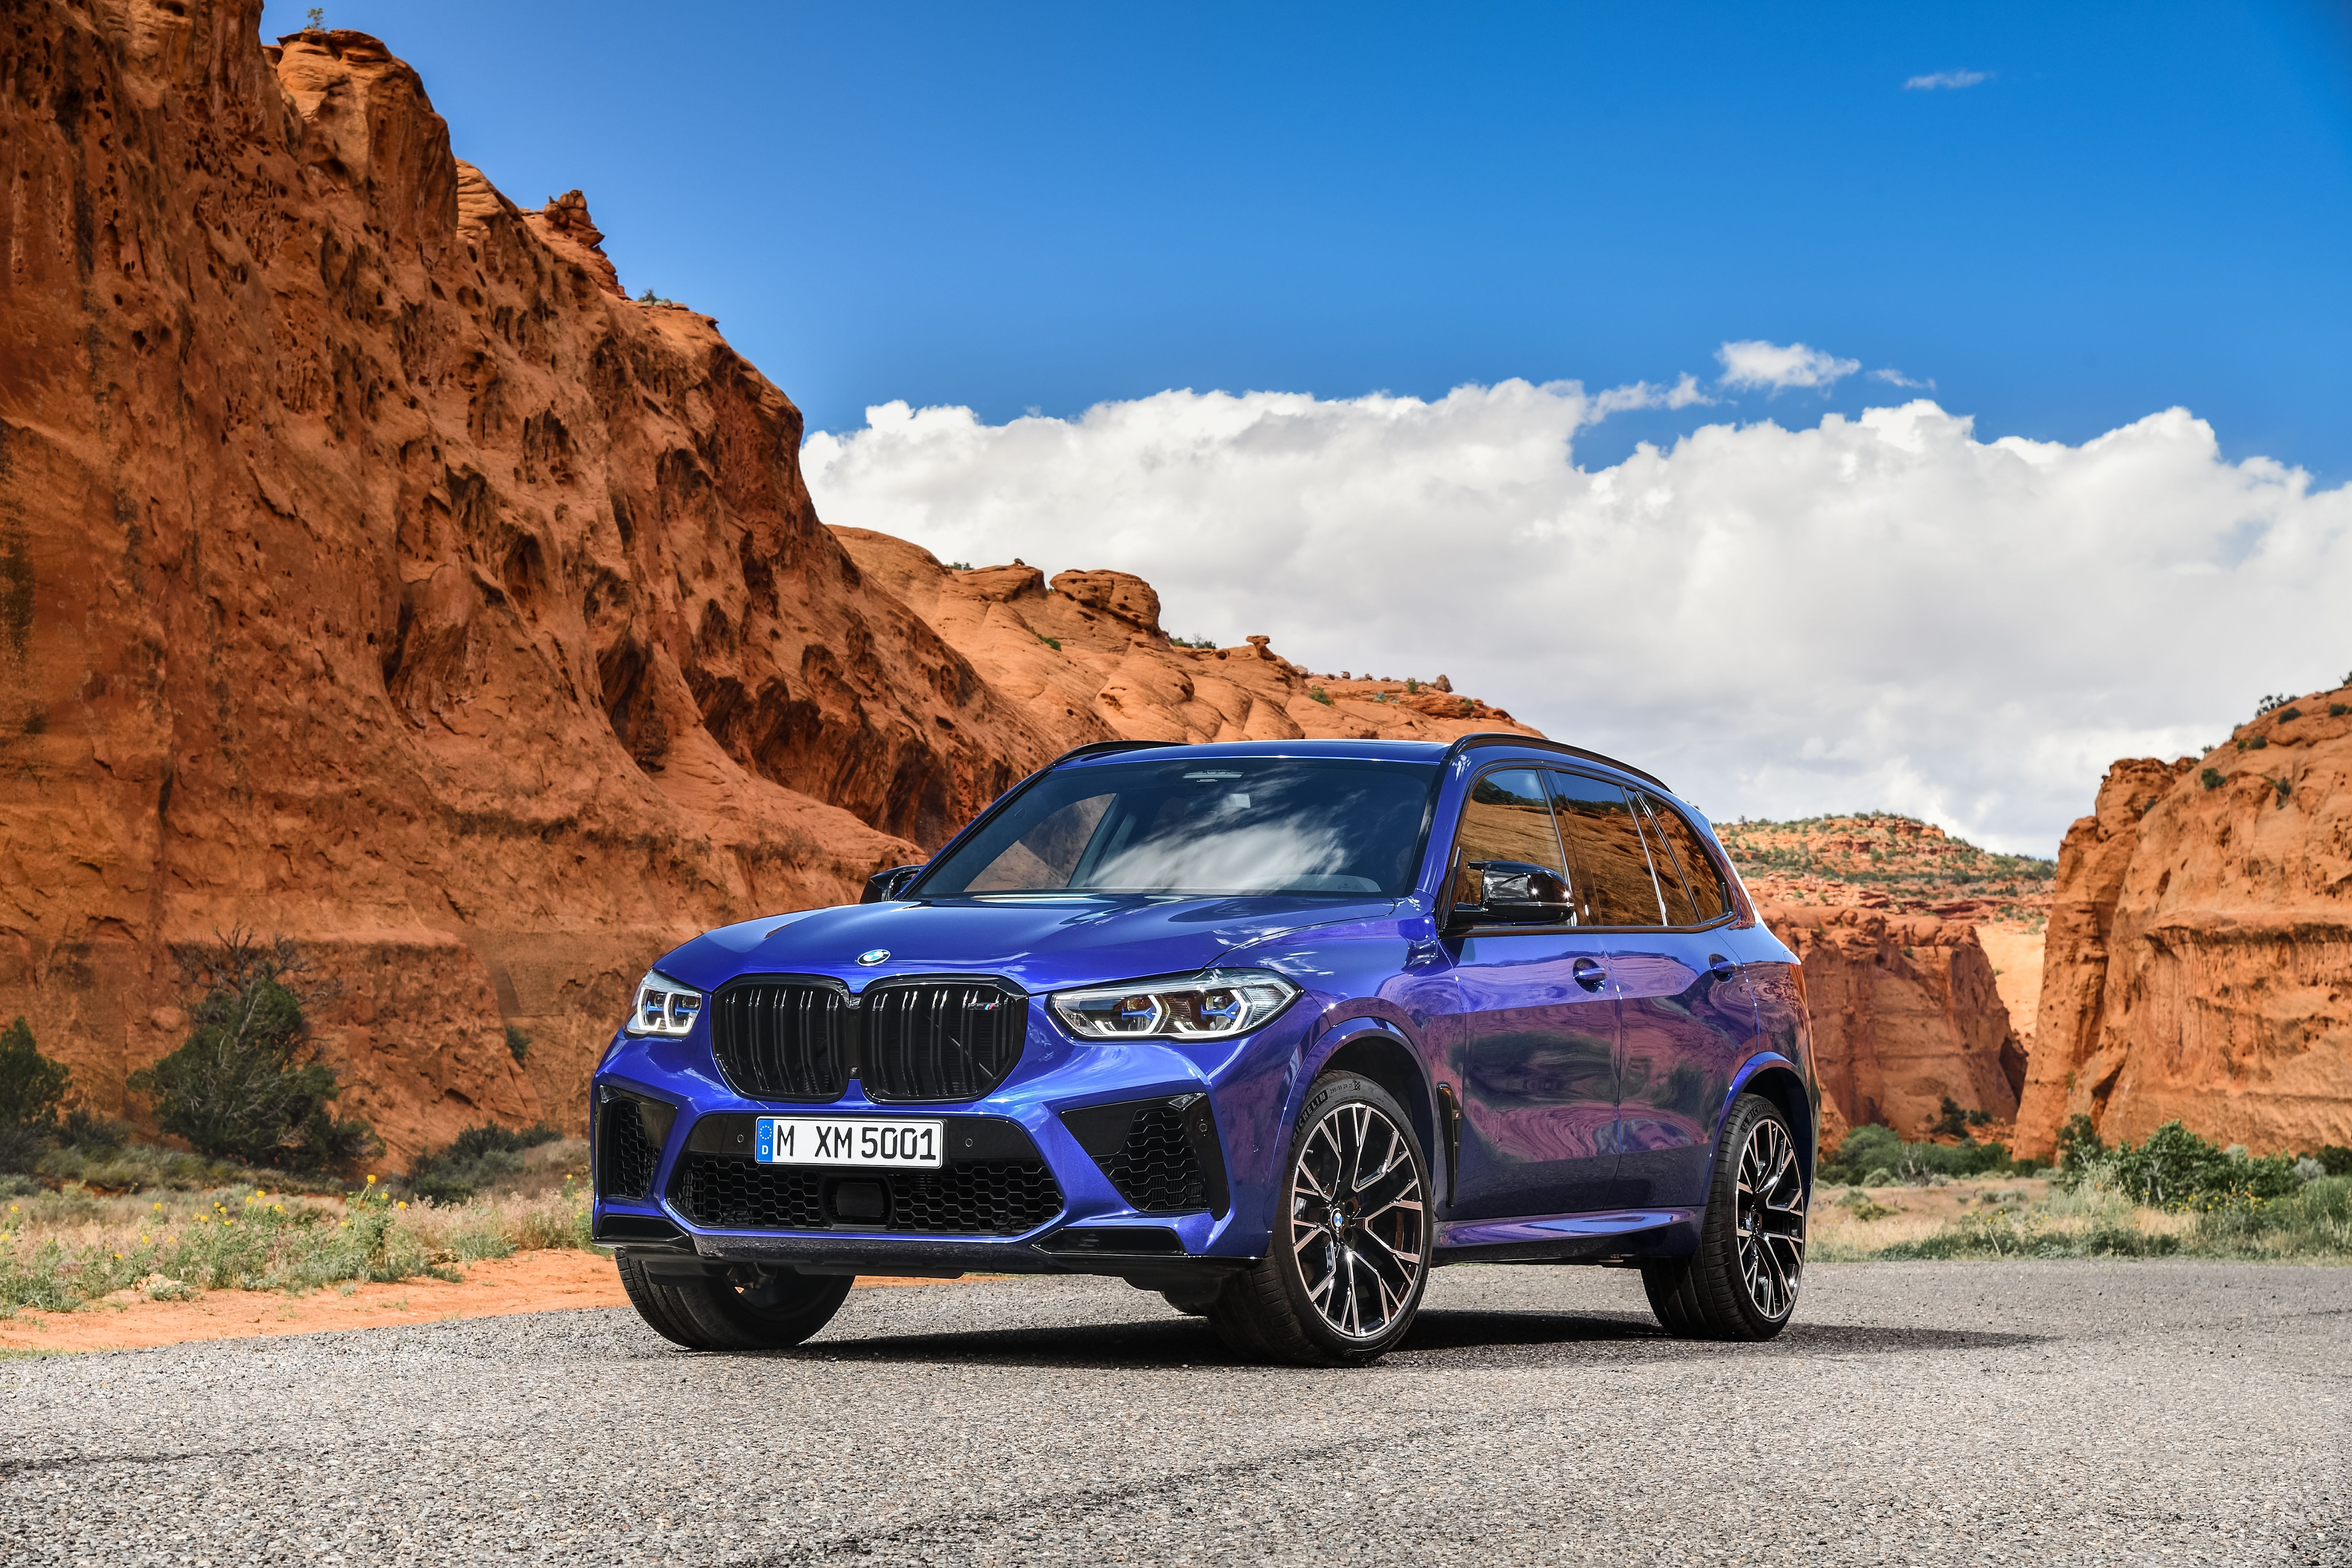 Bmw F95 X5m Sav Mpower Competition Mperformance Sheerdrivingpleasure Badass Monster Muscle Outdoor Offroad Provocativeeyes S Bmw X5 M Bmw X5 Bmw